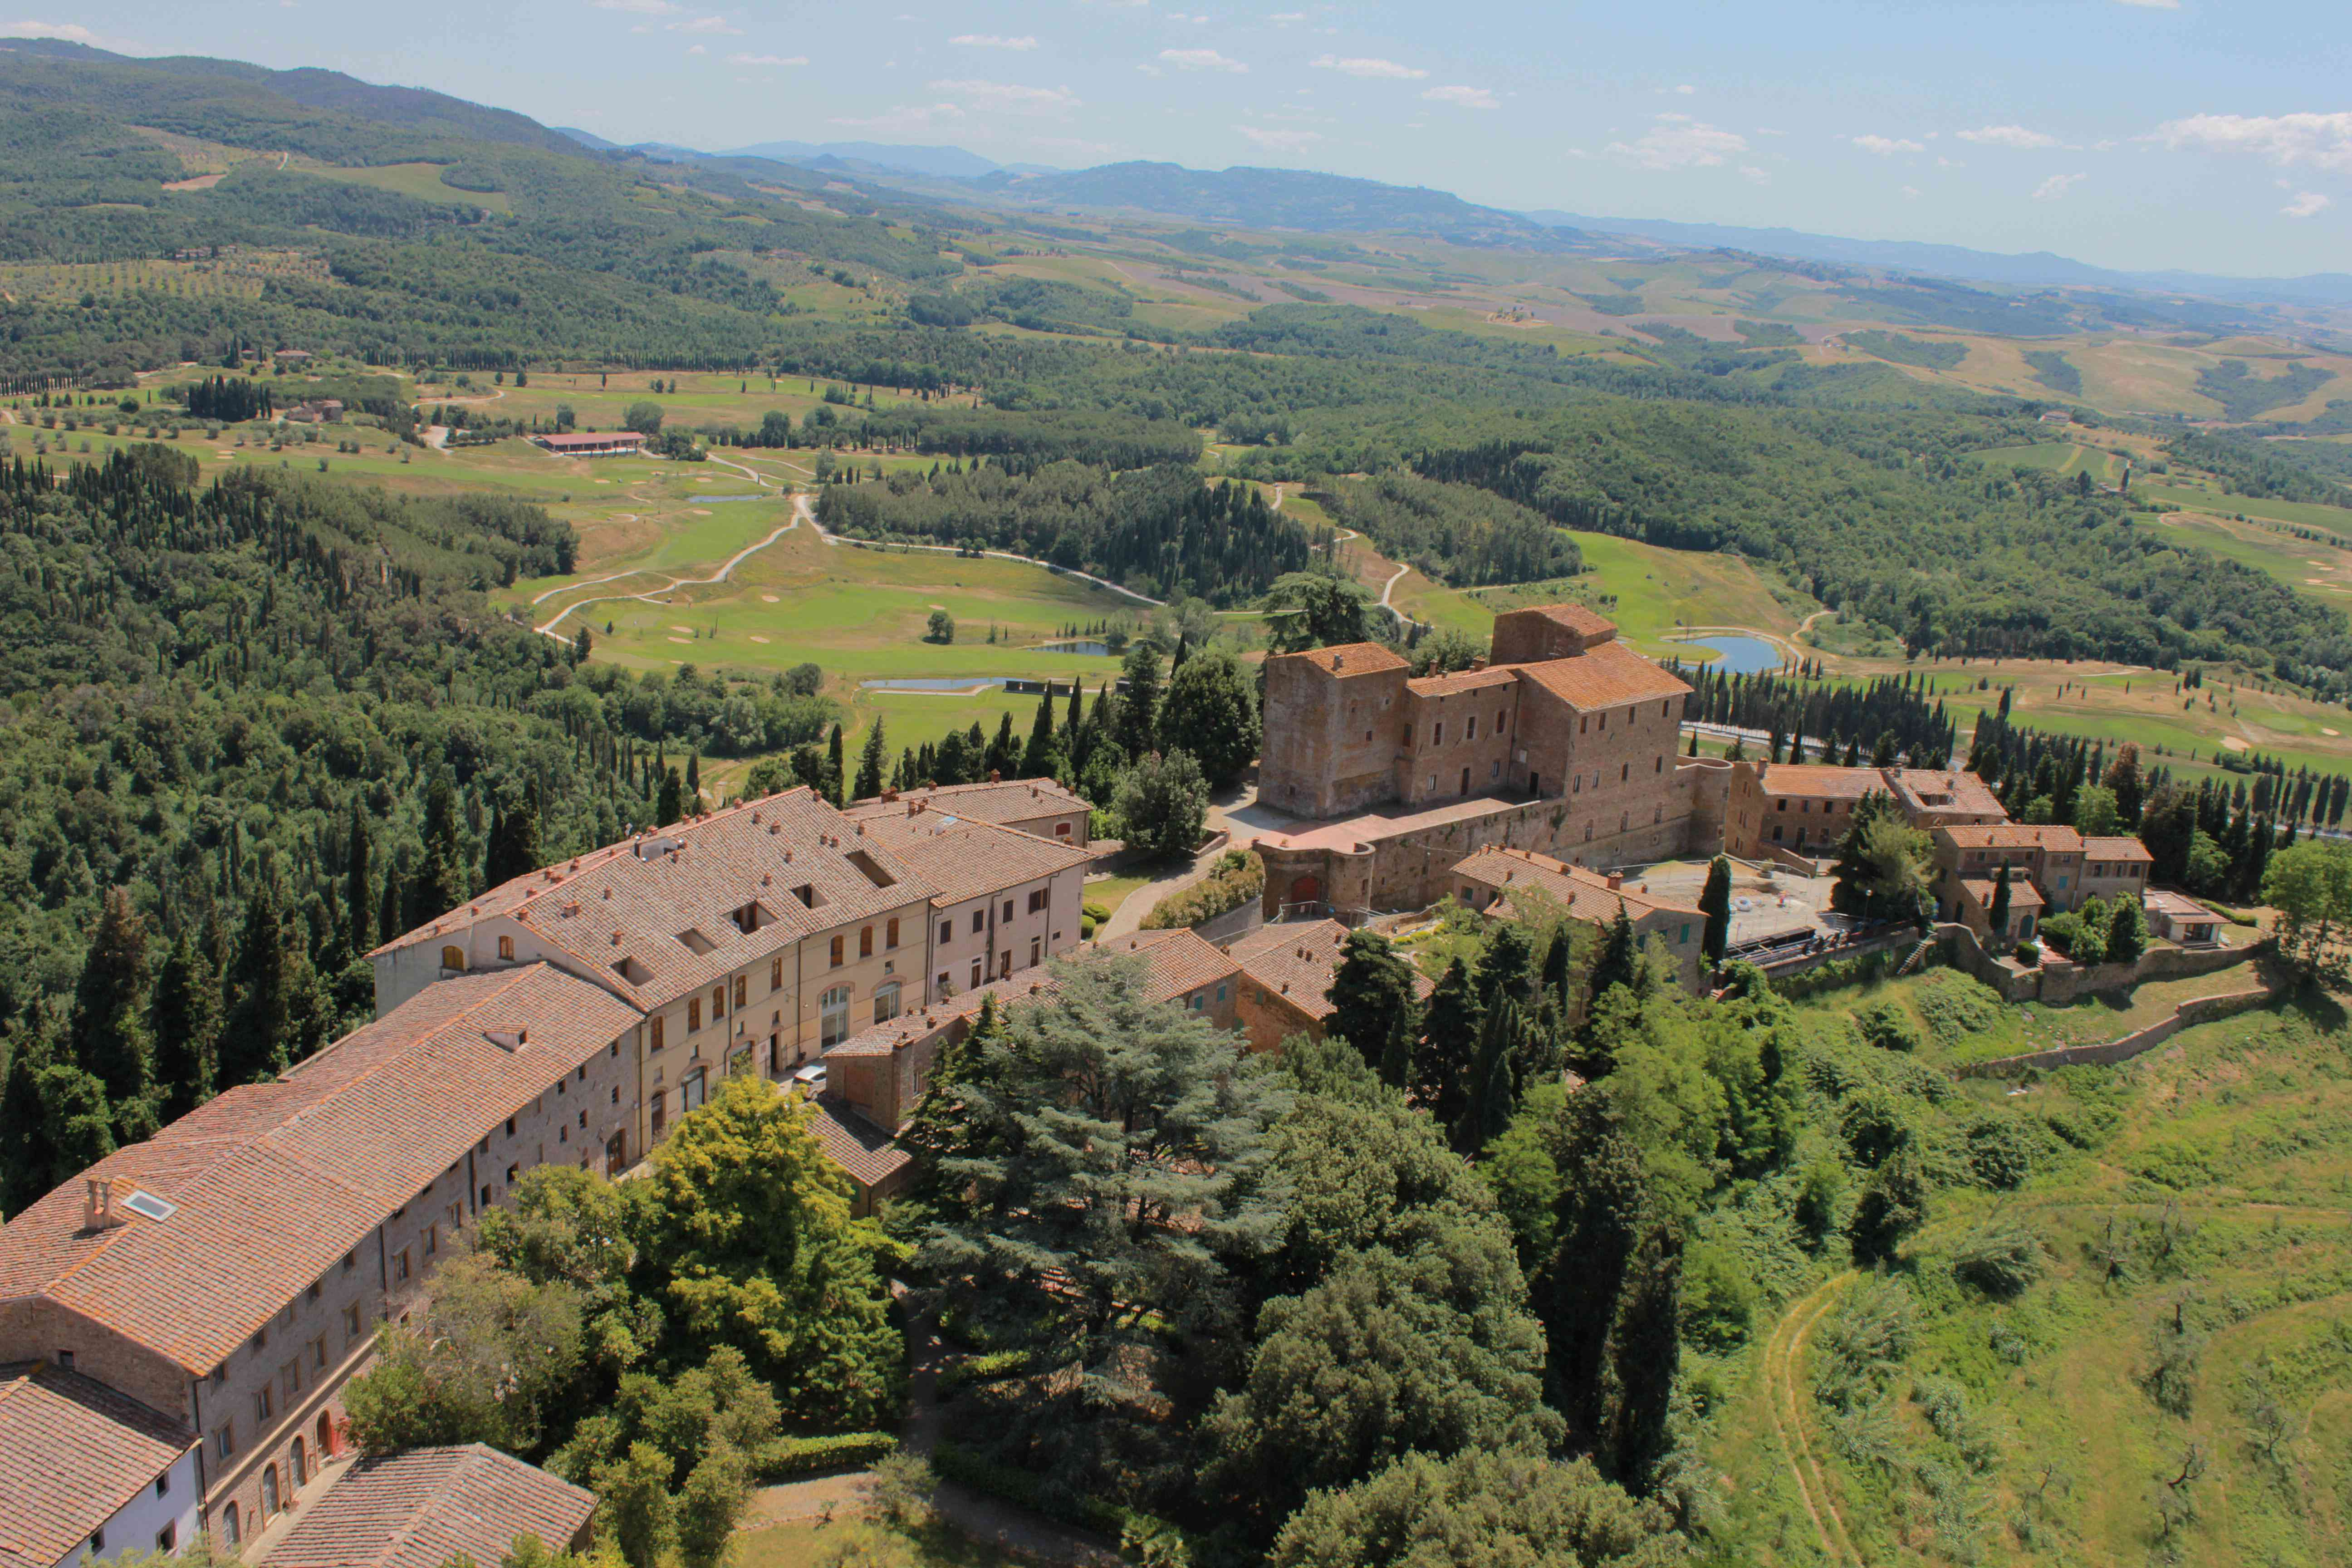 The 2,700-acre Tocana Resort Castelfalfi sits in the Tuscan hills